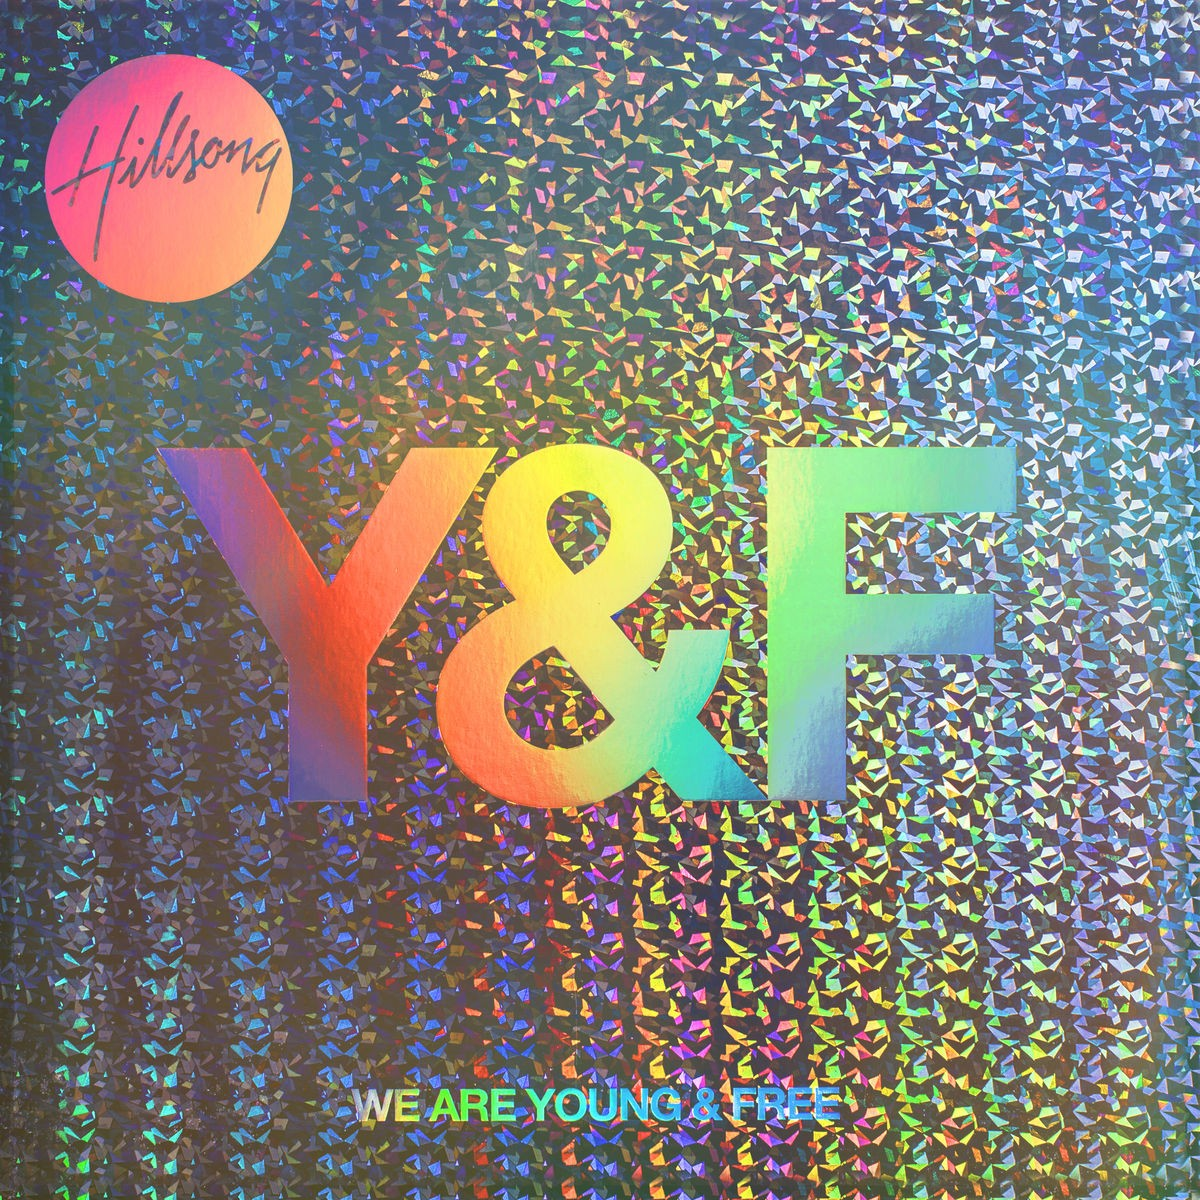 Hillsong Young & Free - We Are Young & Free (Live) CD - HMACD280